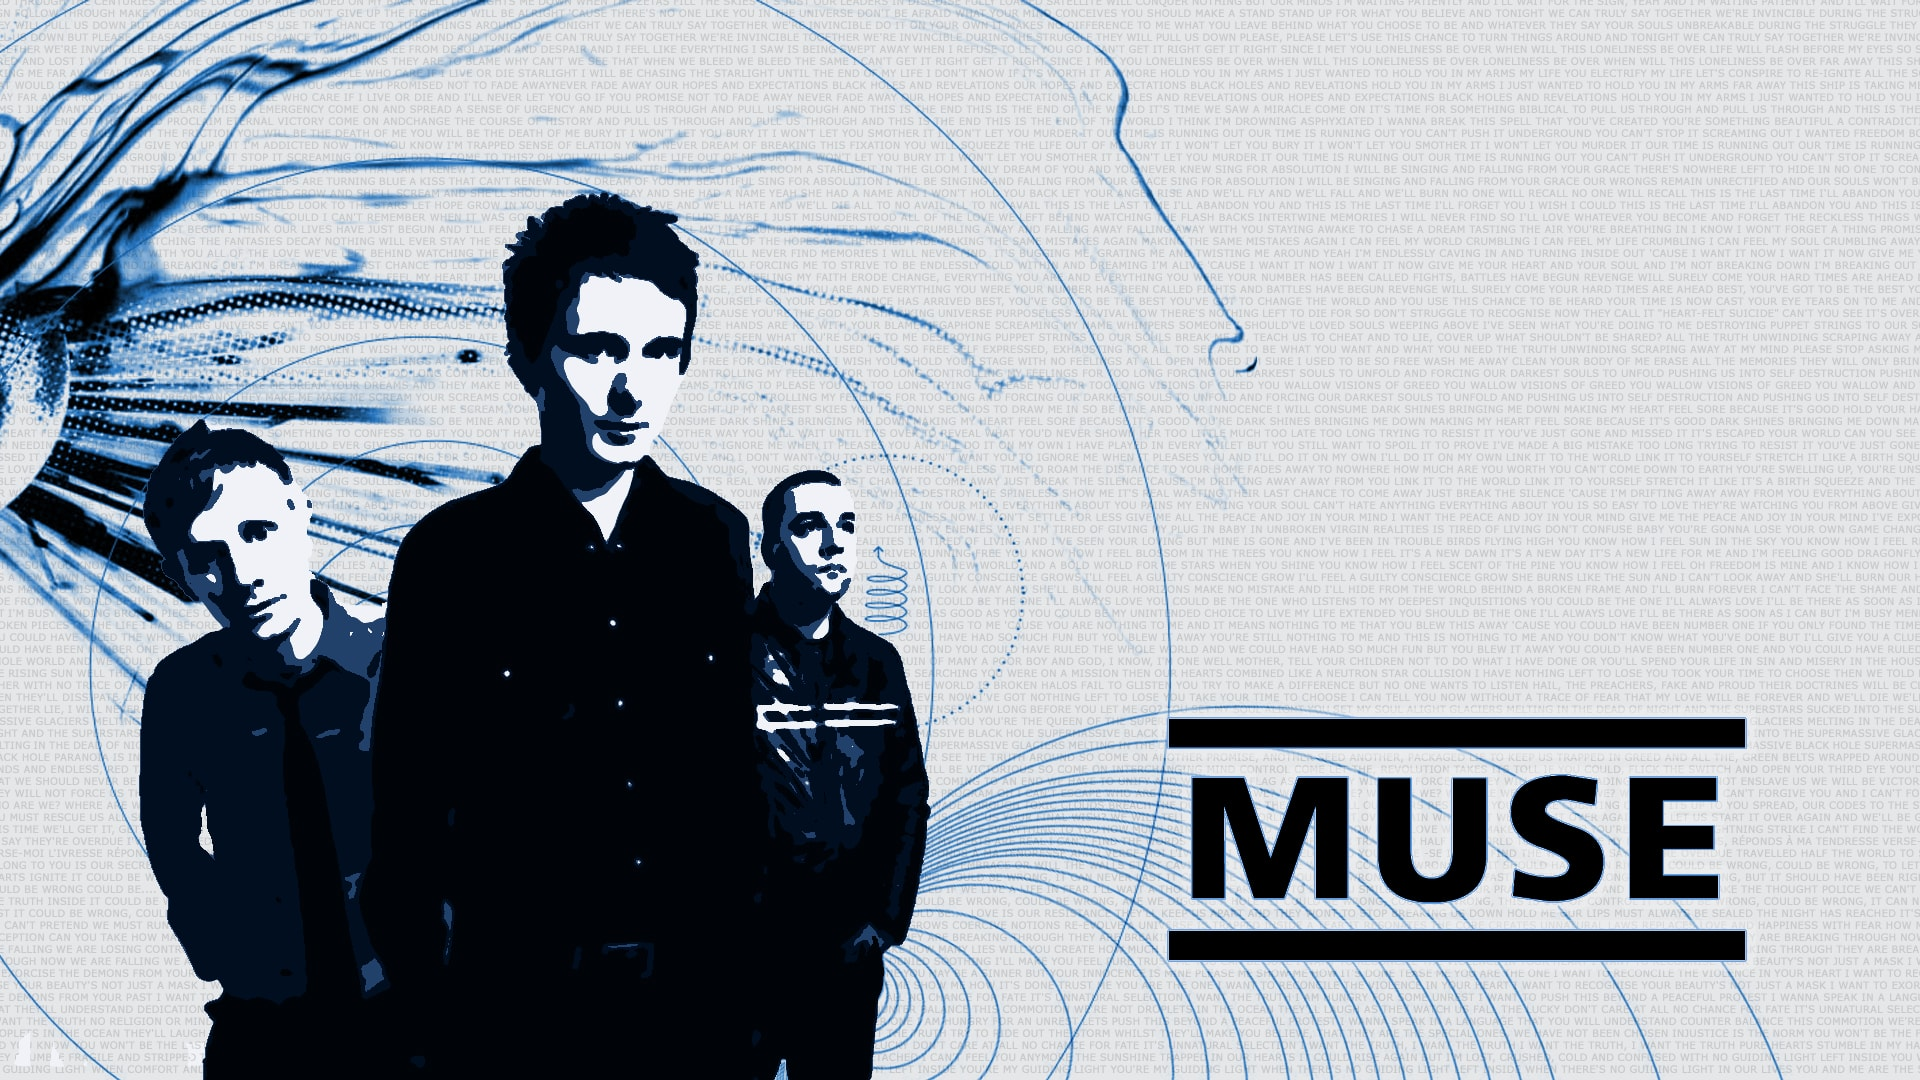 Muse Desktop wallpaper